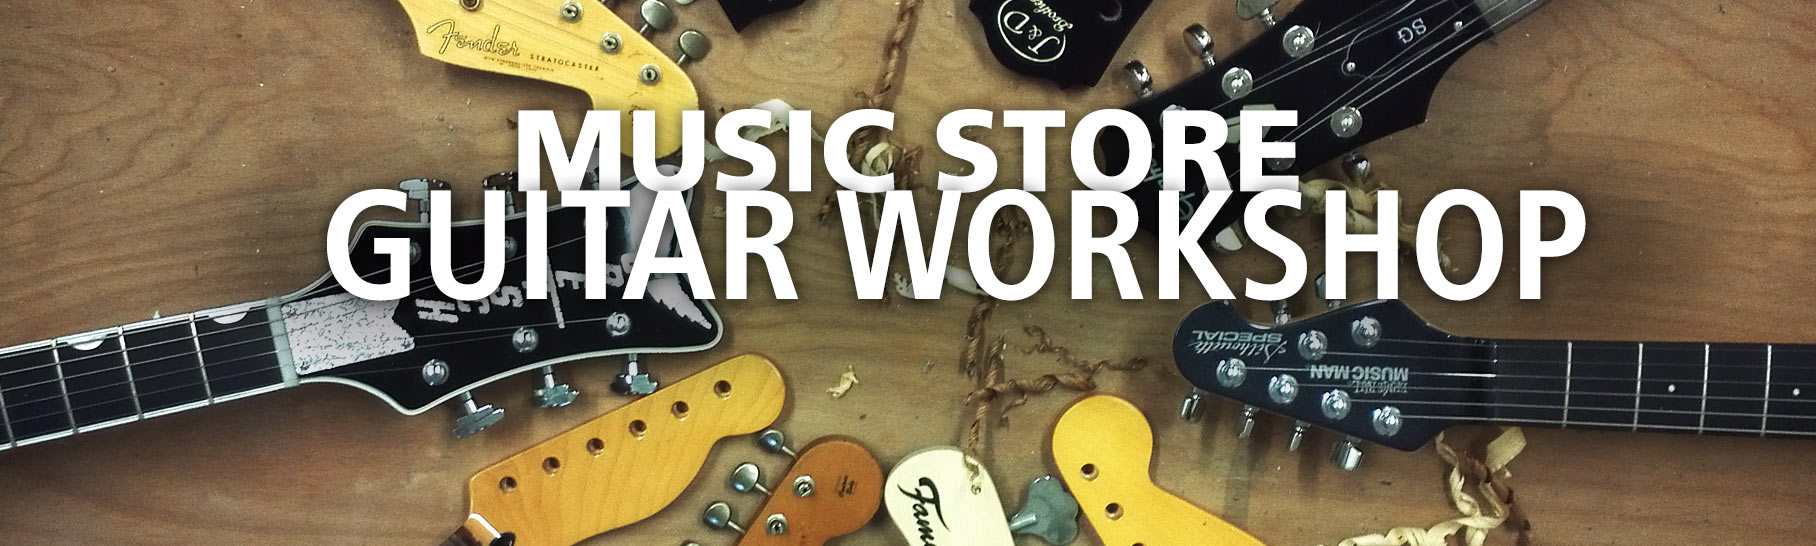 MusicStore-MusicStoreShop:/static-pages/Gitarrenwerkstatt/MS_Gitarrenwerkstatt_EN.jpg